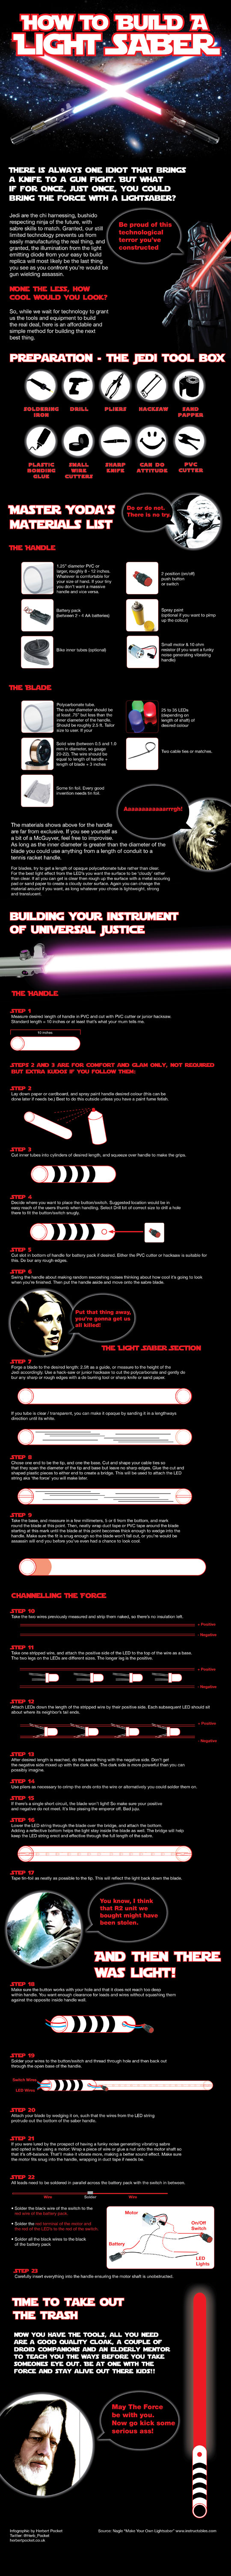 how-to-build-a-lightsaber_50a6c3adeff66